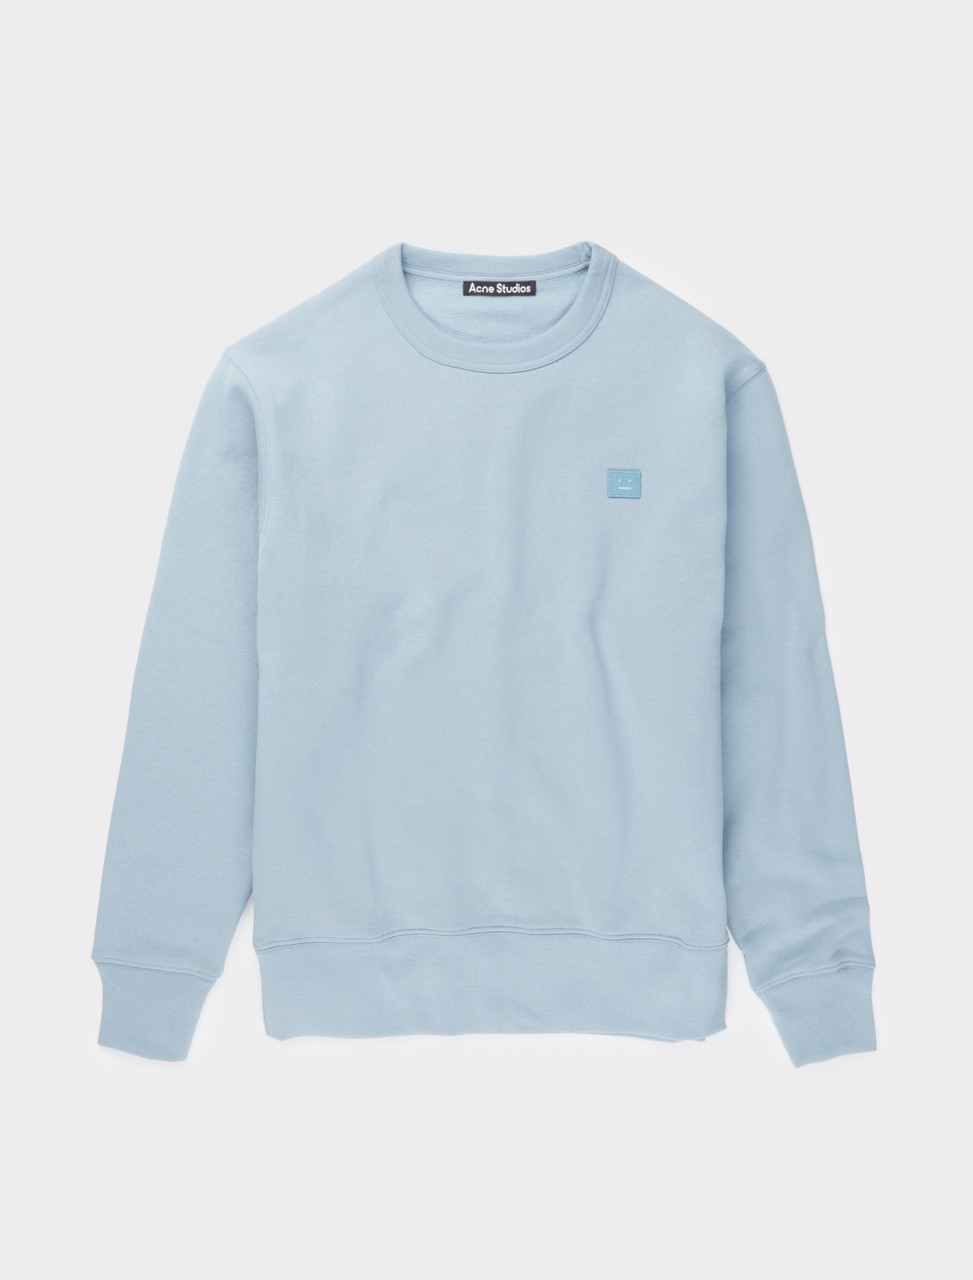 110-2HL173-AAO ACNE STUDIOS FAIRVIEW FACE MINERAL BLUE